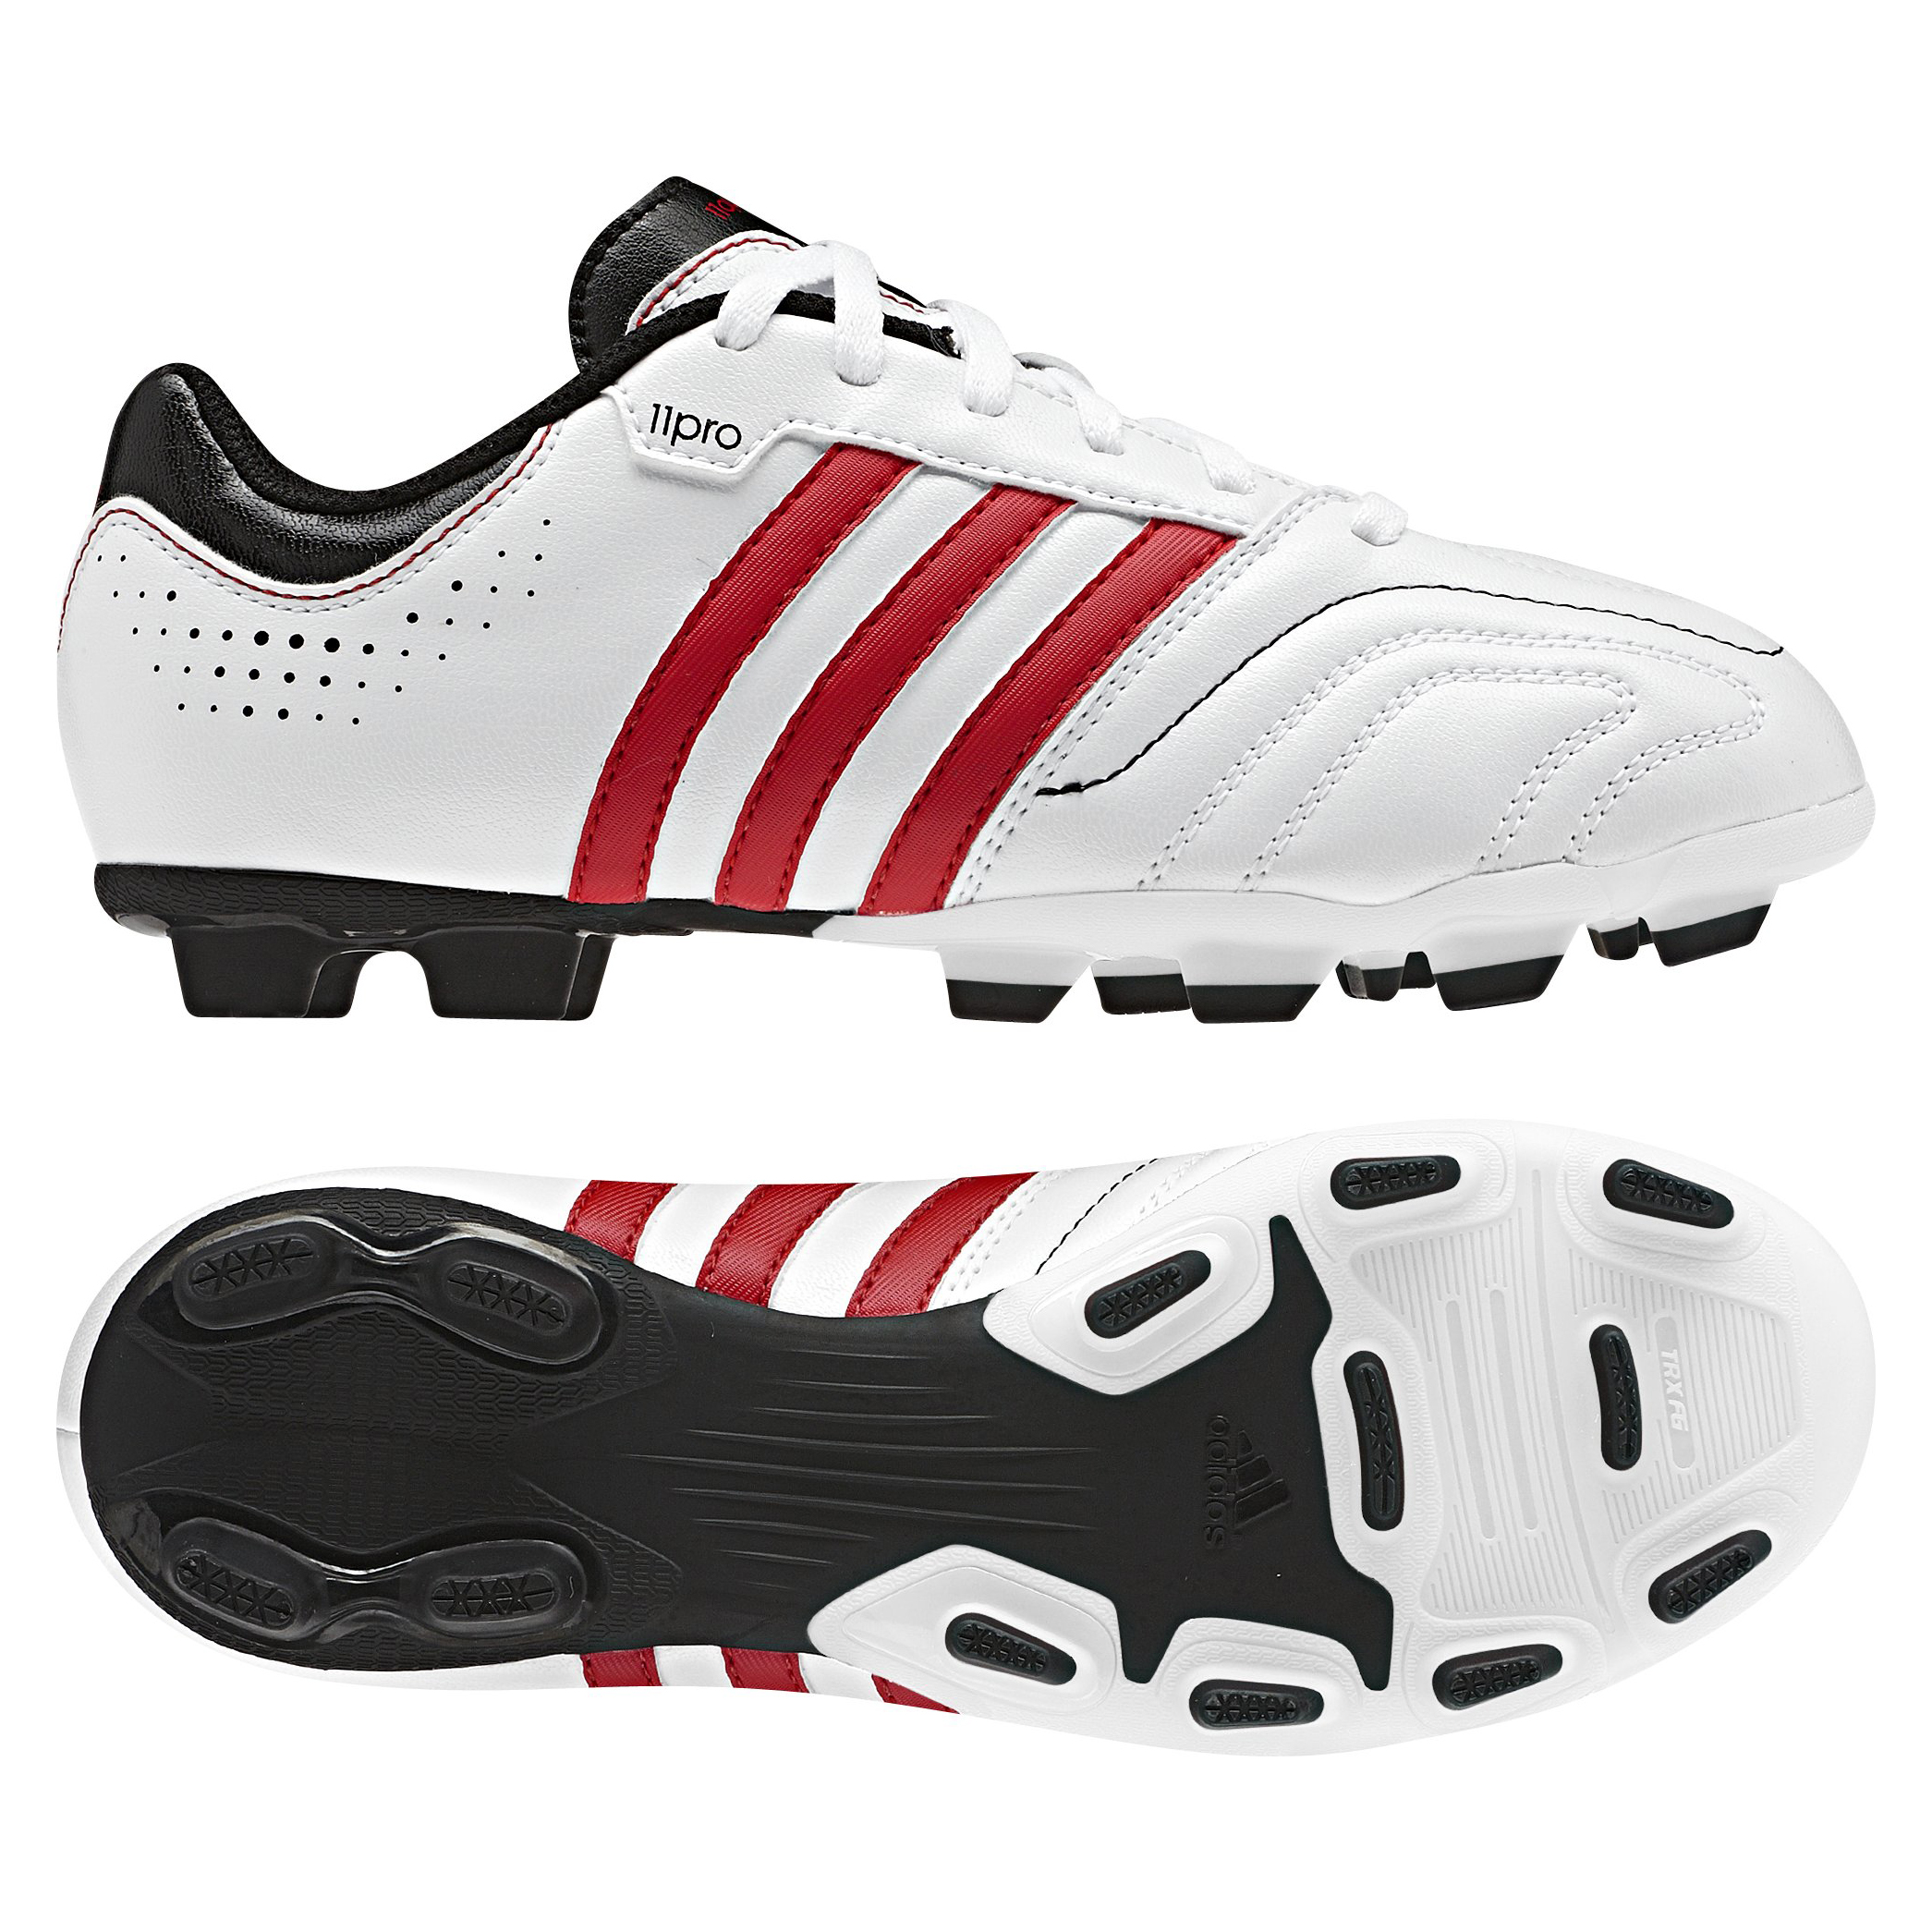 Adidas 11Questra TRX Firm Ground Football Boots - White/Vivid Red/Black - Kids